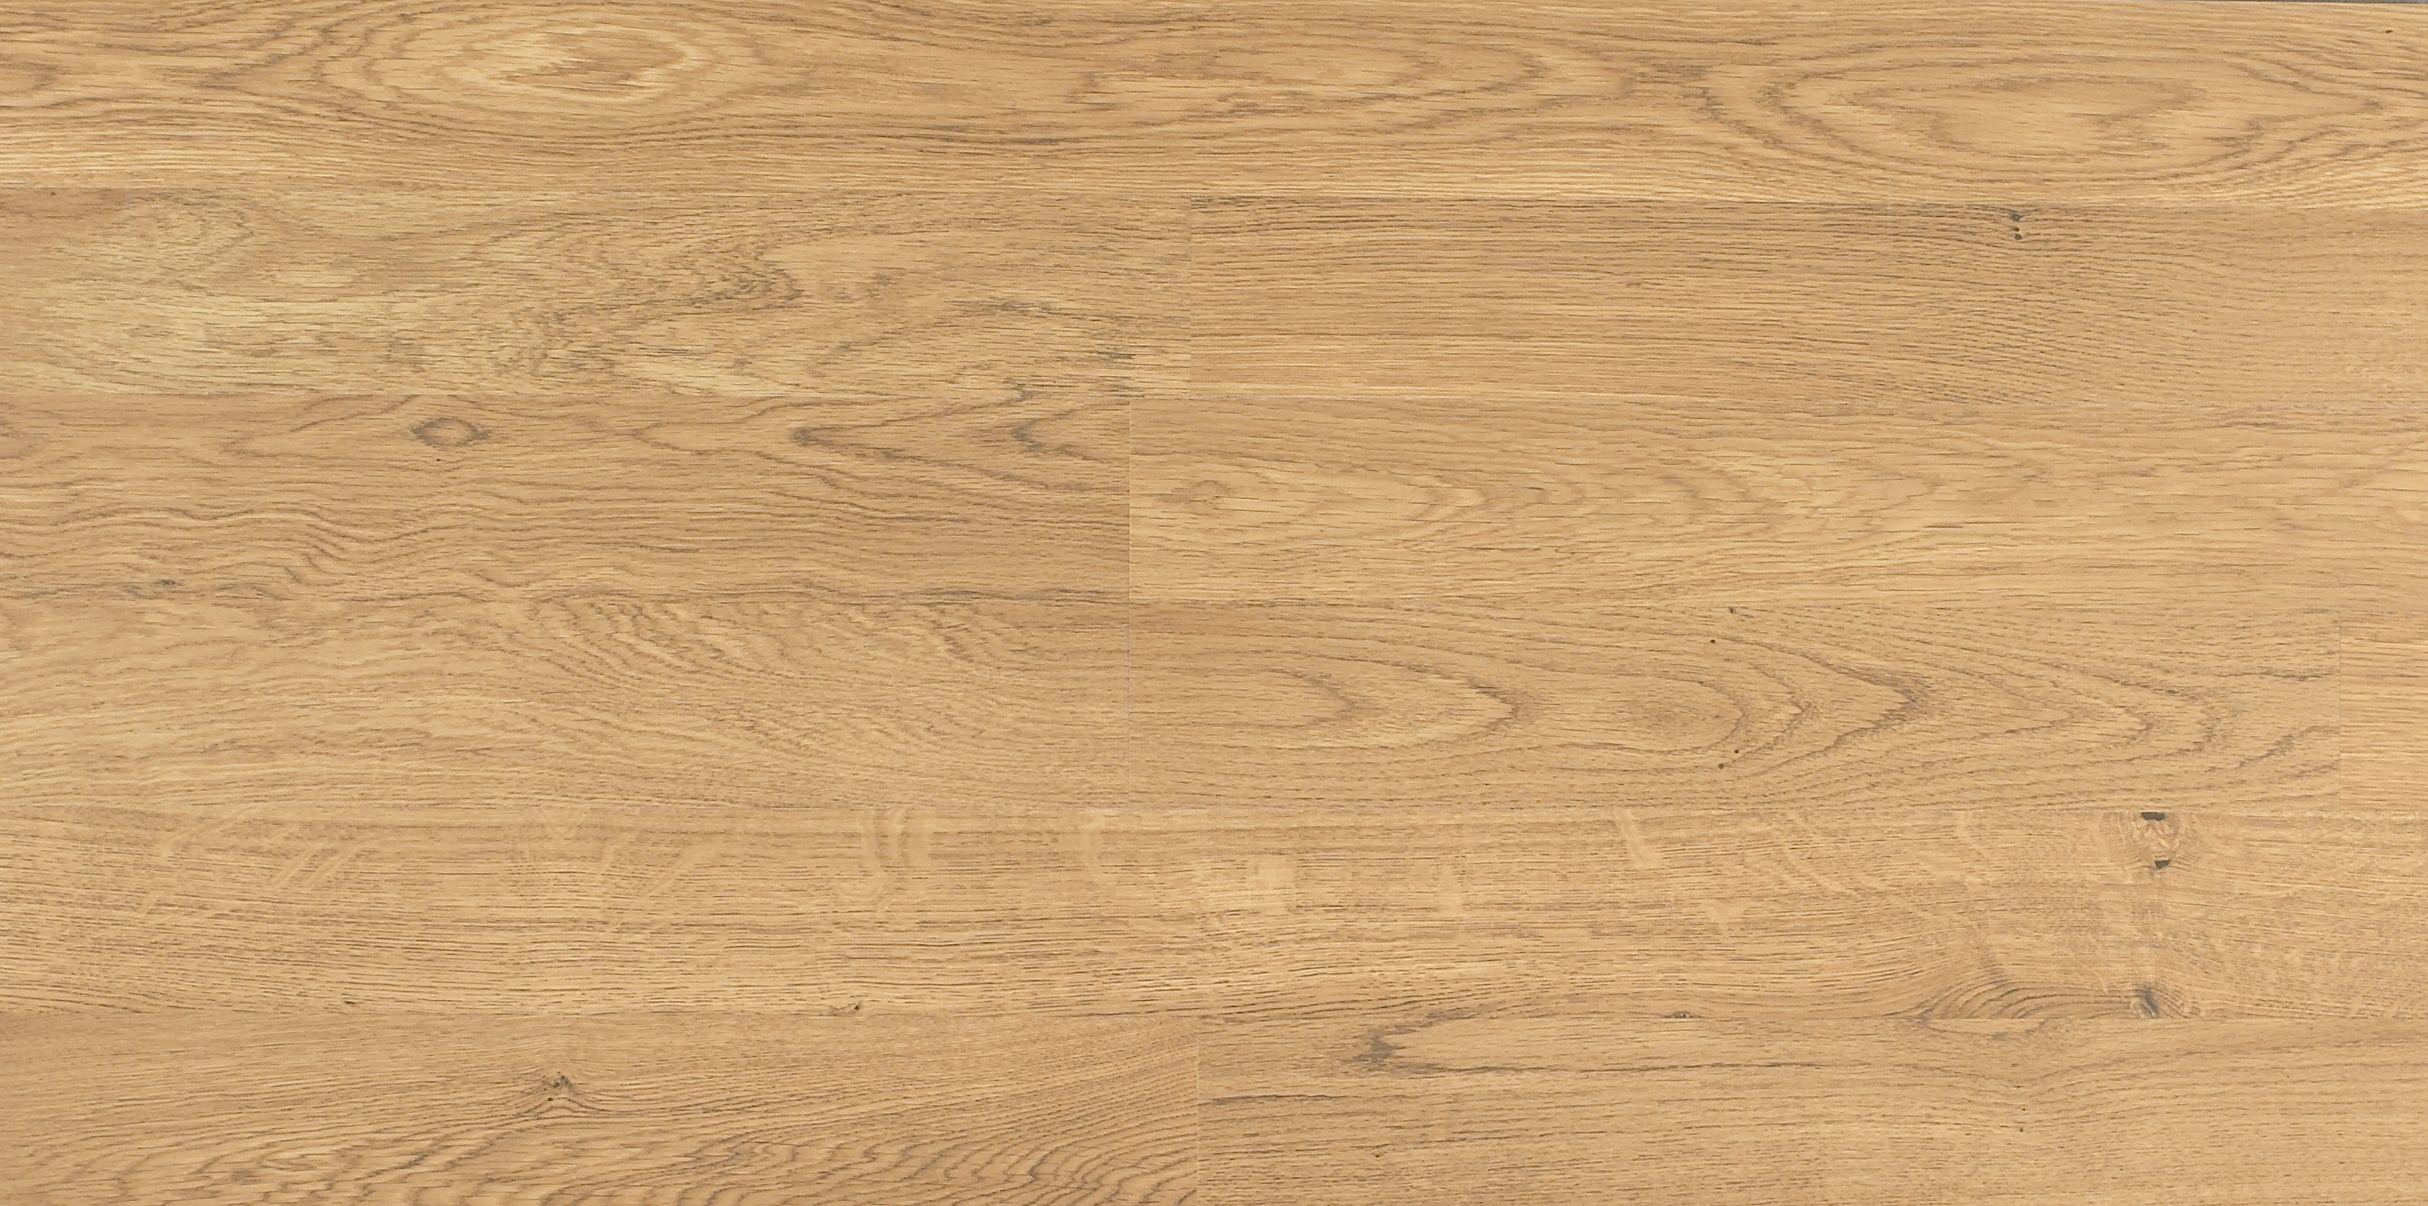 light wood grain background Google Search